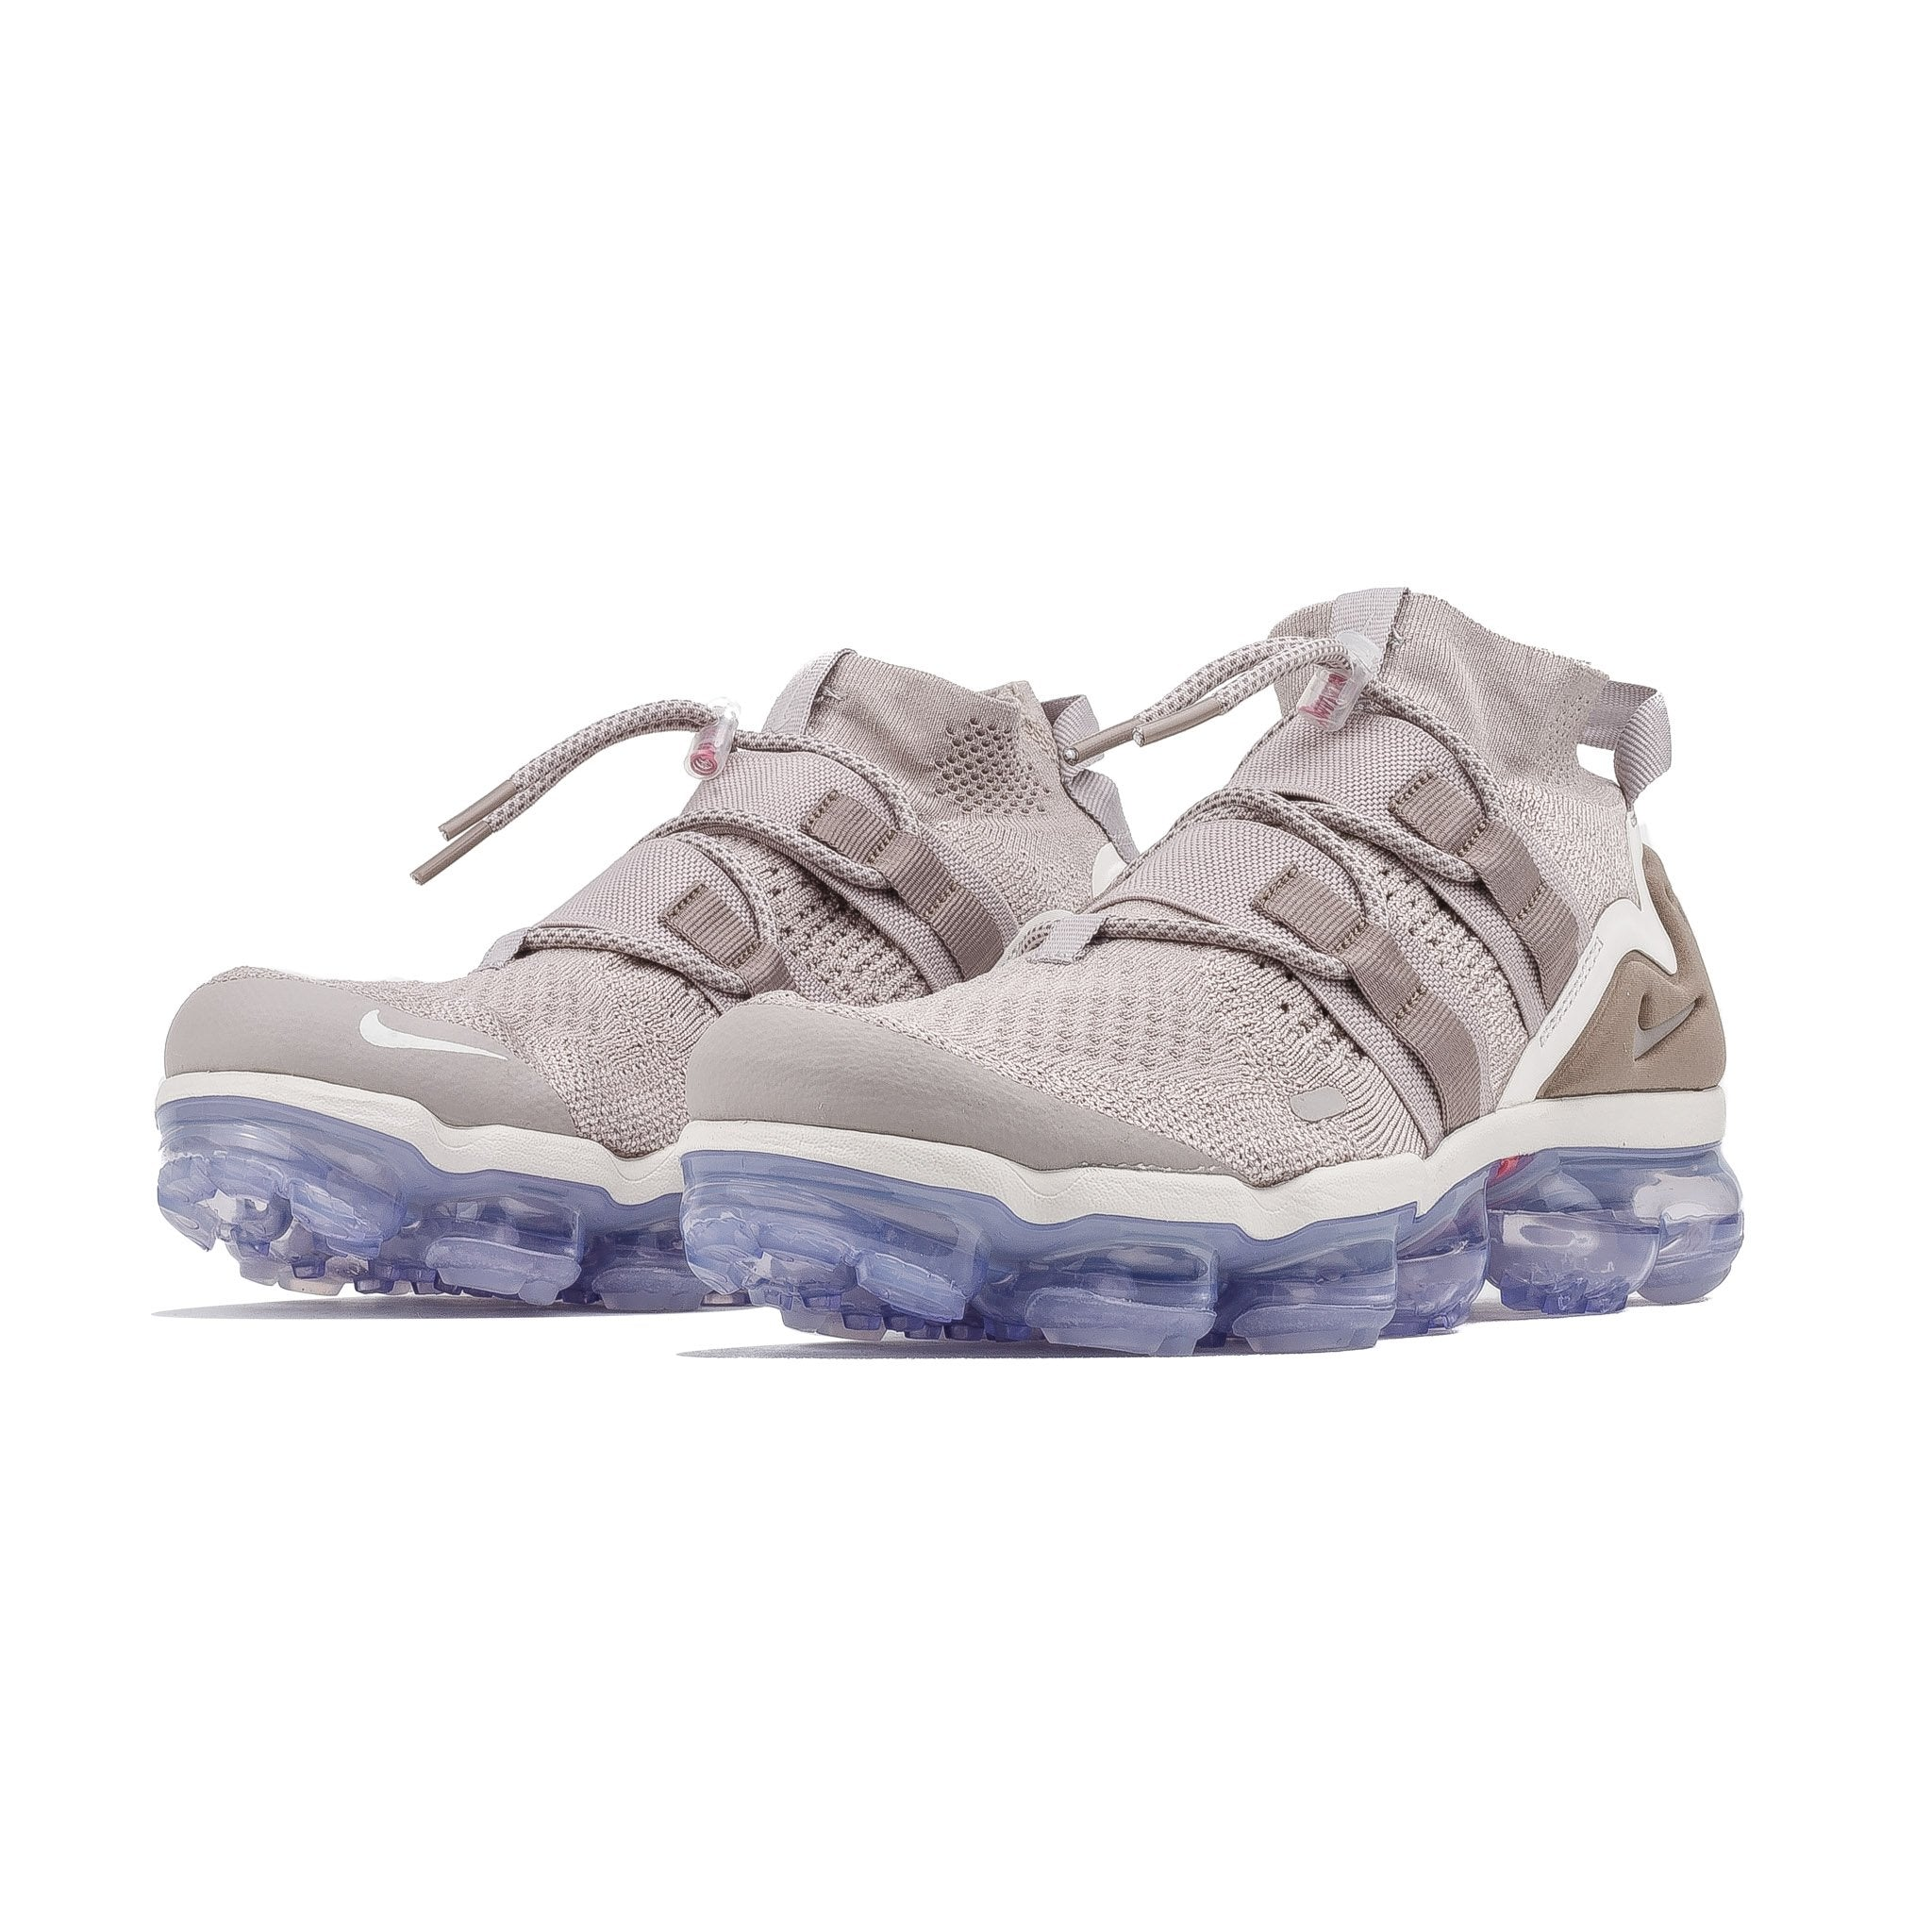 Air Vapormax FK Utility AH6834-205 Moon Particle